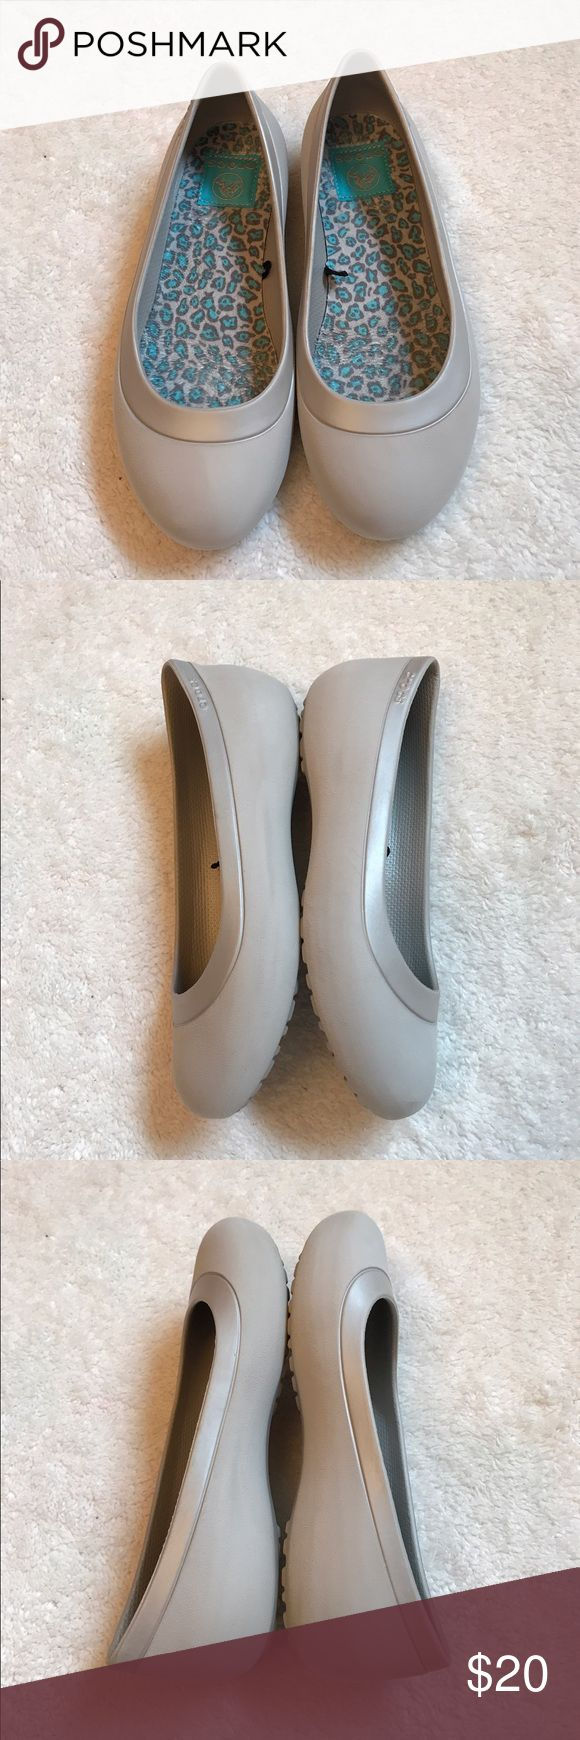 Women's crocs Excellent used condition CROCS Shoes Flats & Loafers